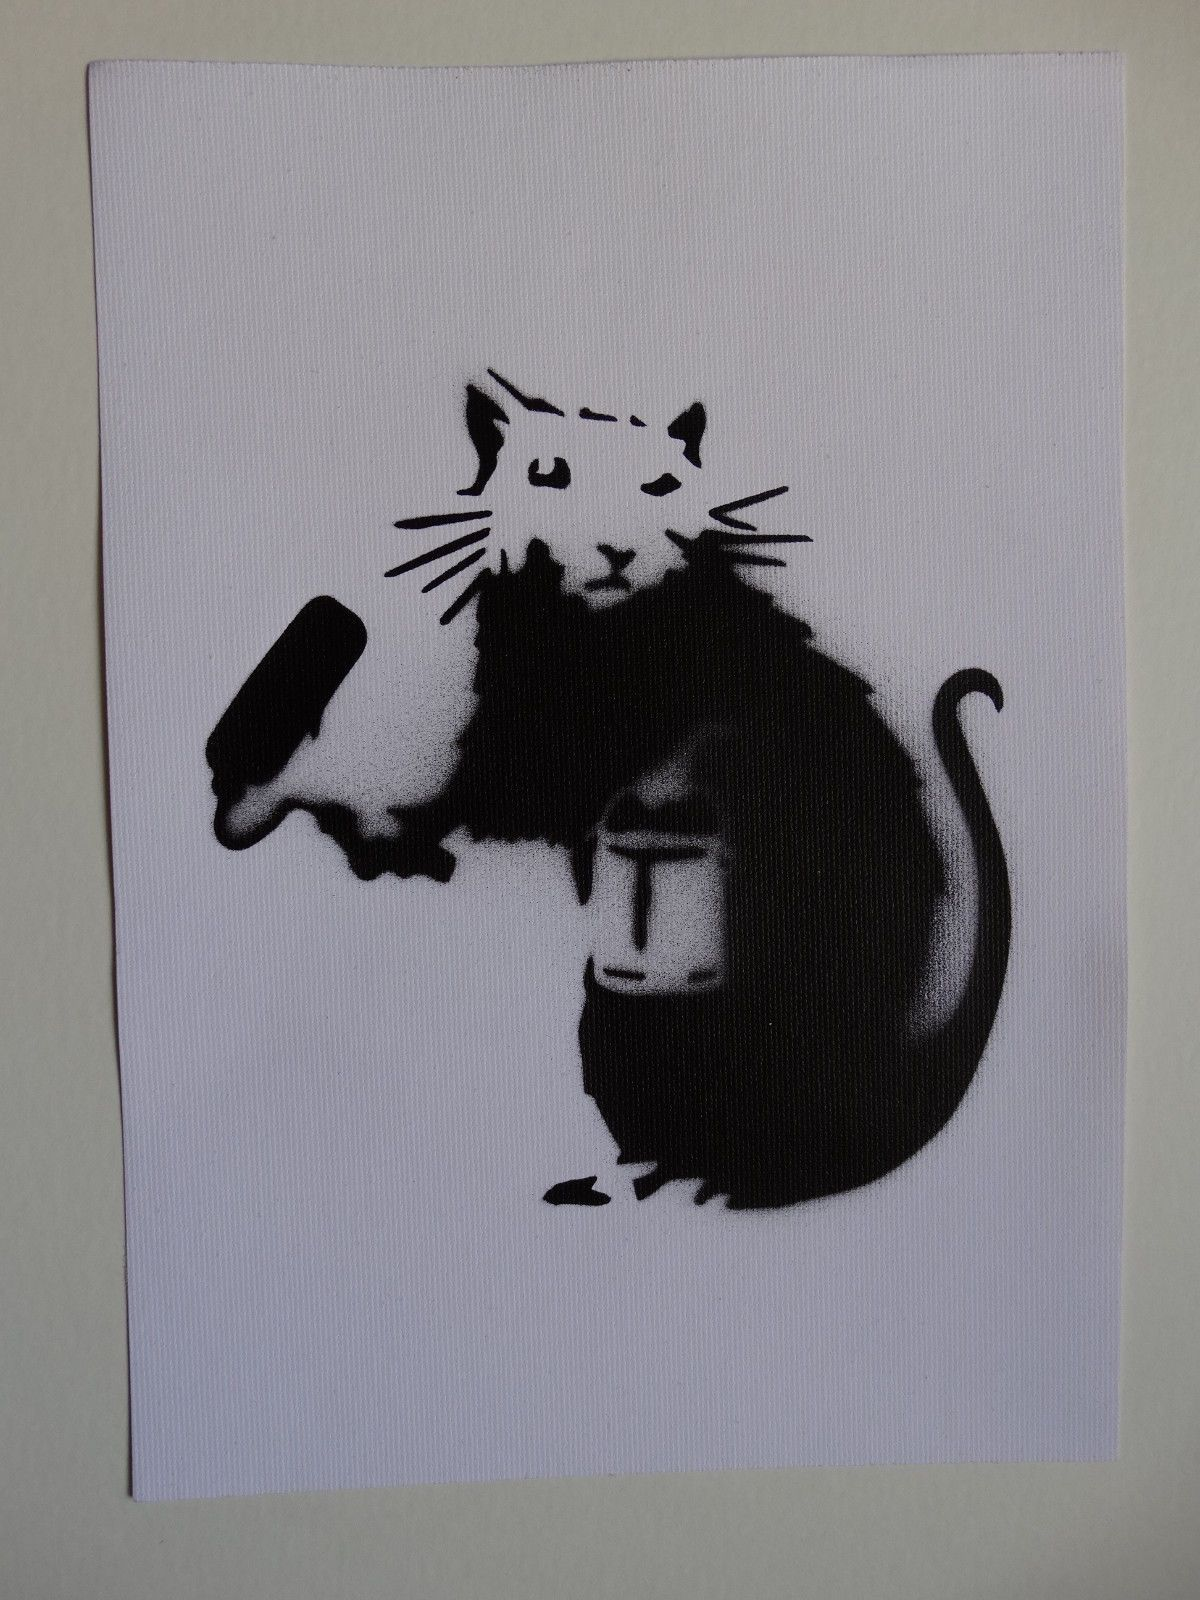 Banksy Rat Spray Paint Stencil On Canvas Original Dismaland